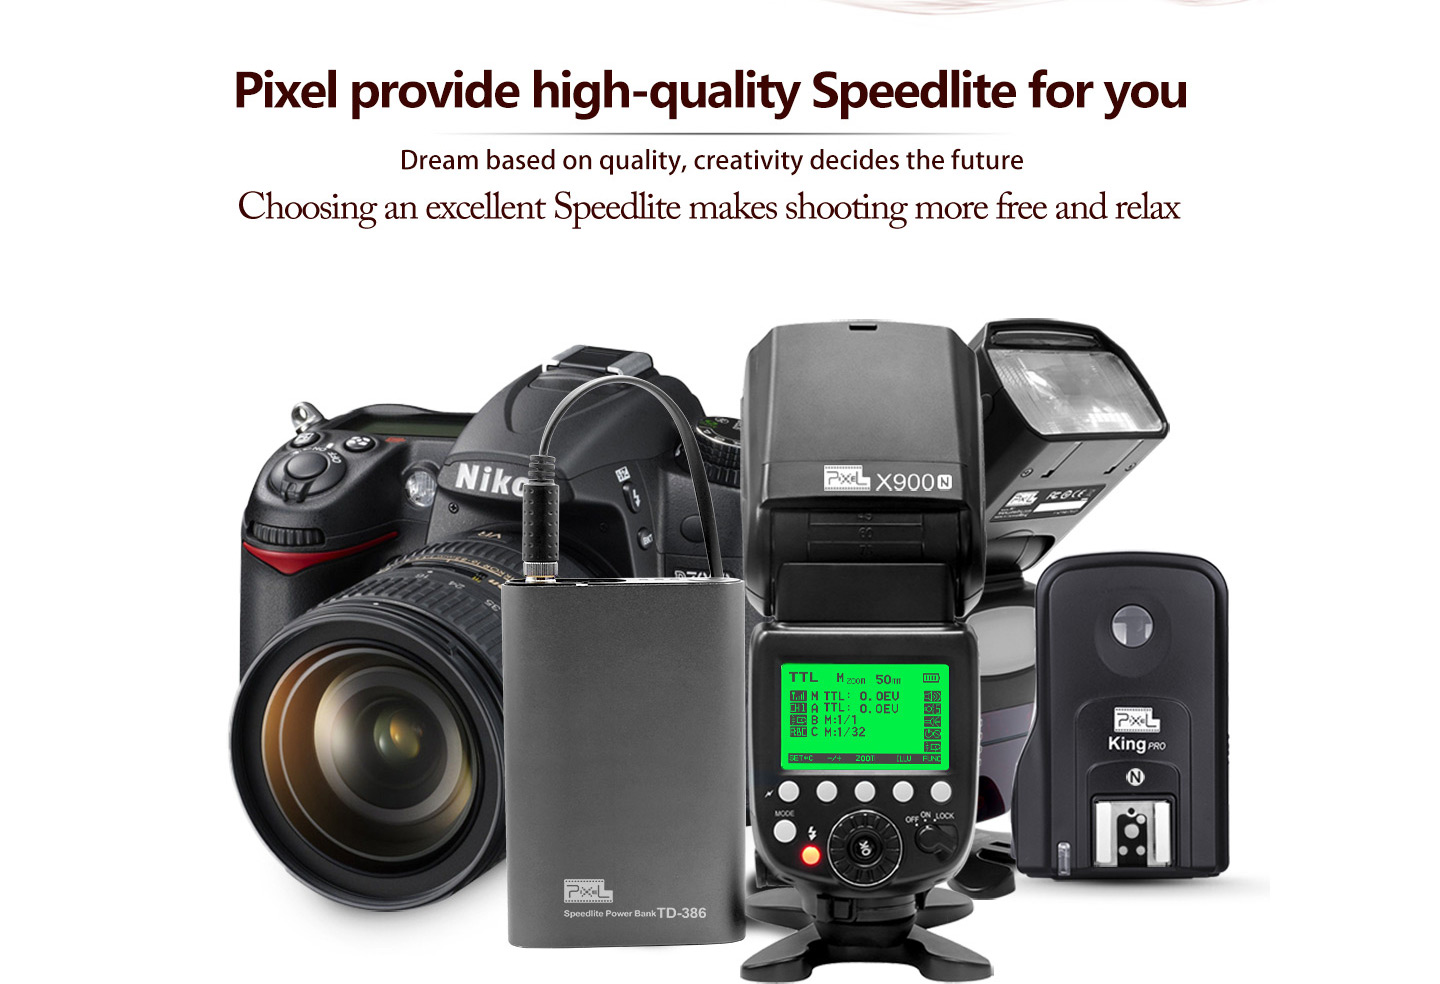 Pixel provide high-quality Speedlite for you